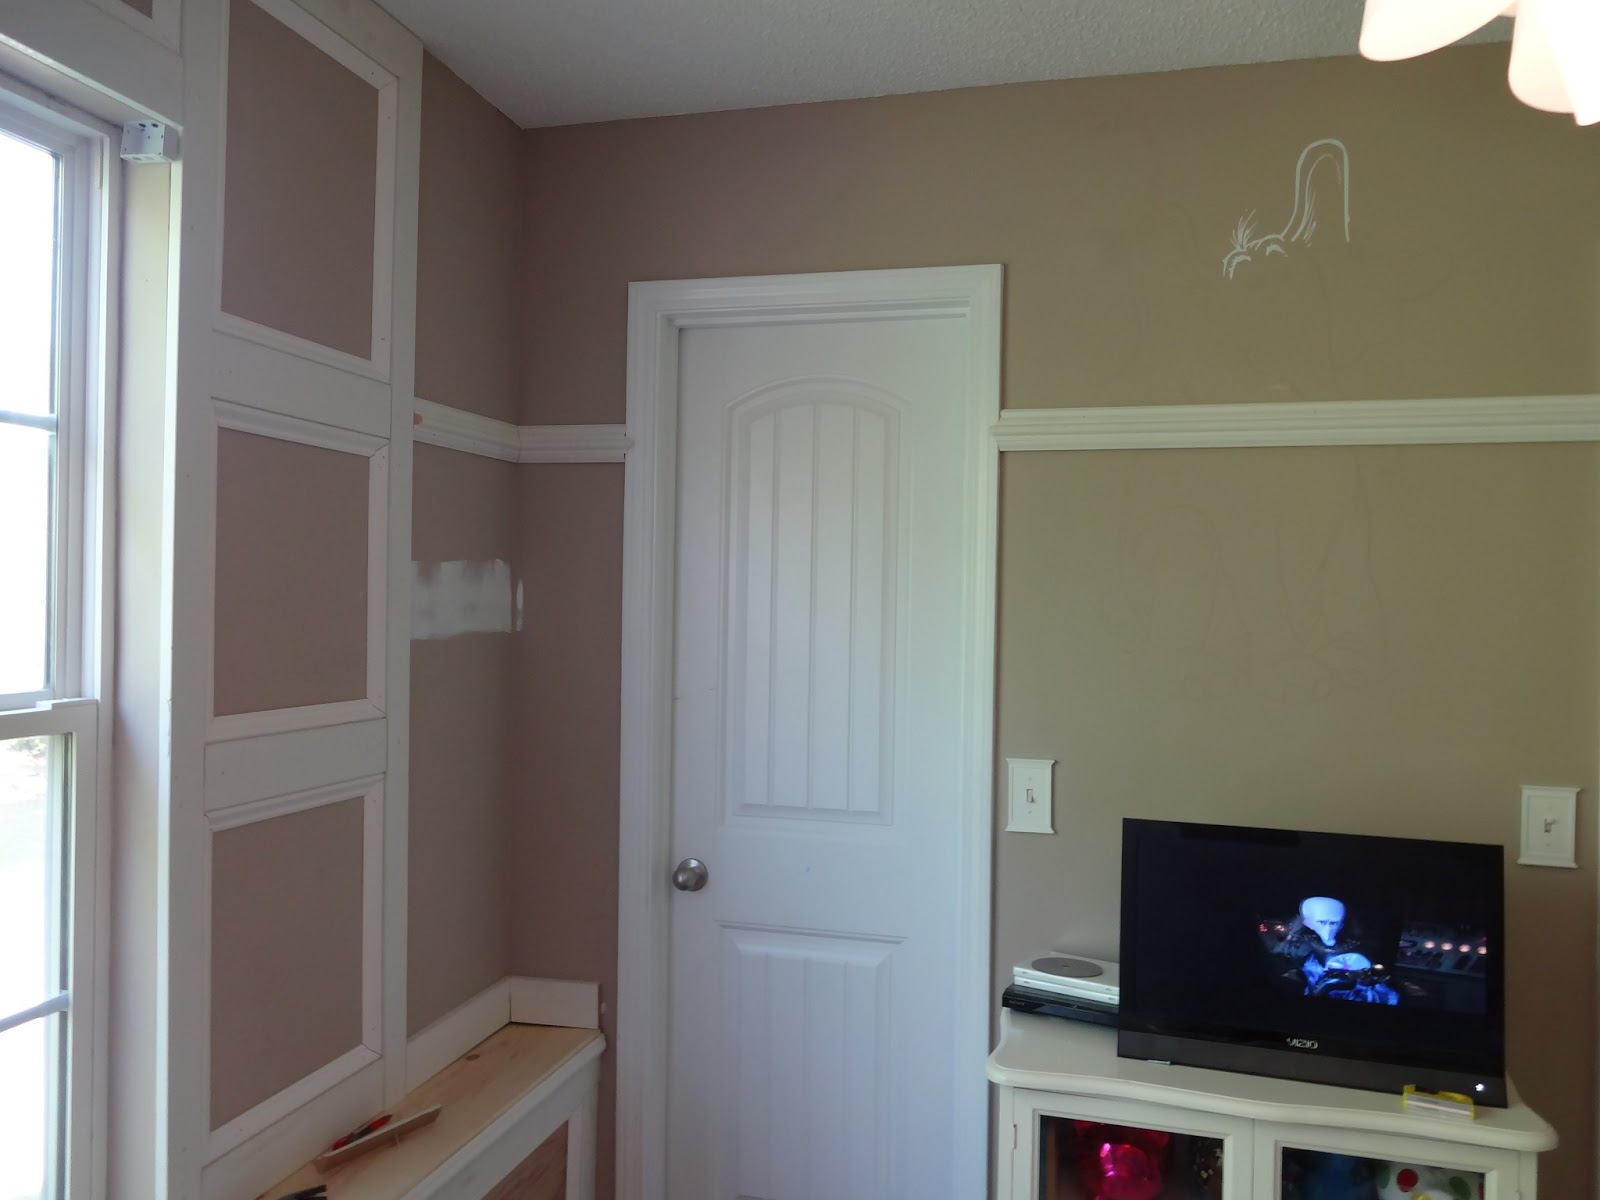 Home Depot Chair Rail Molding Steamer Cushions Argos Bedroom Makeover With Window